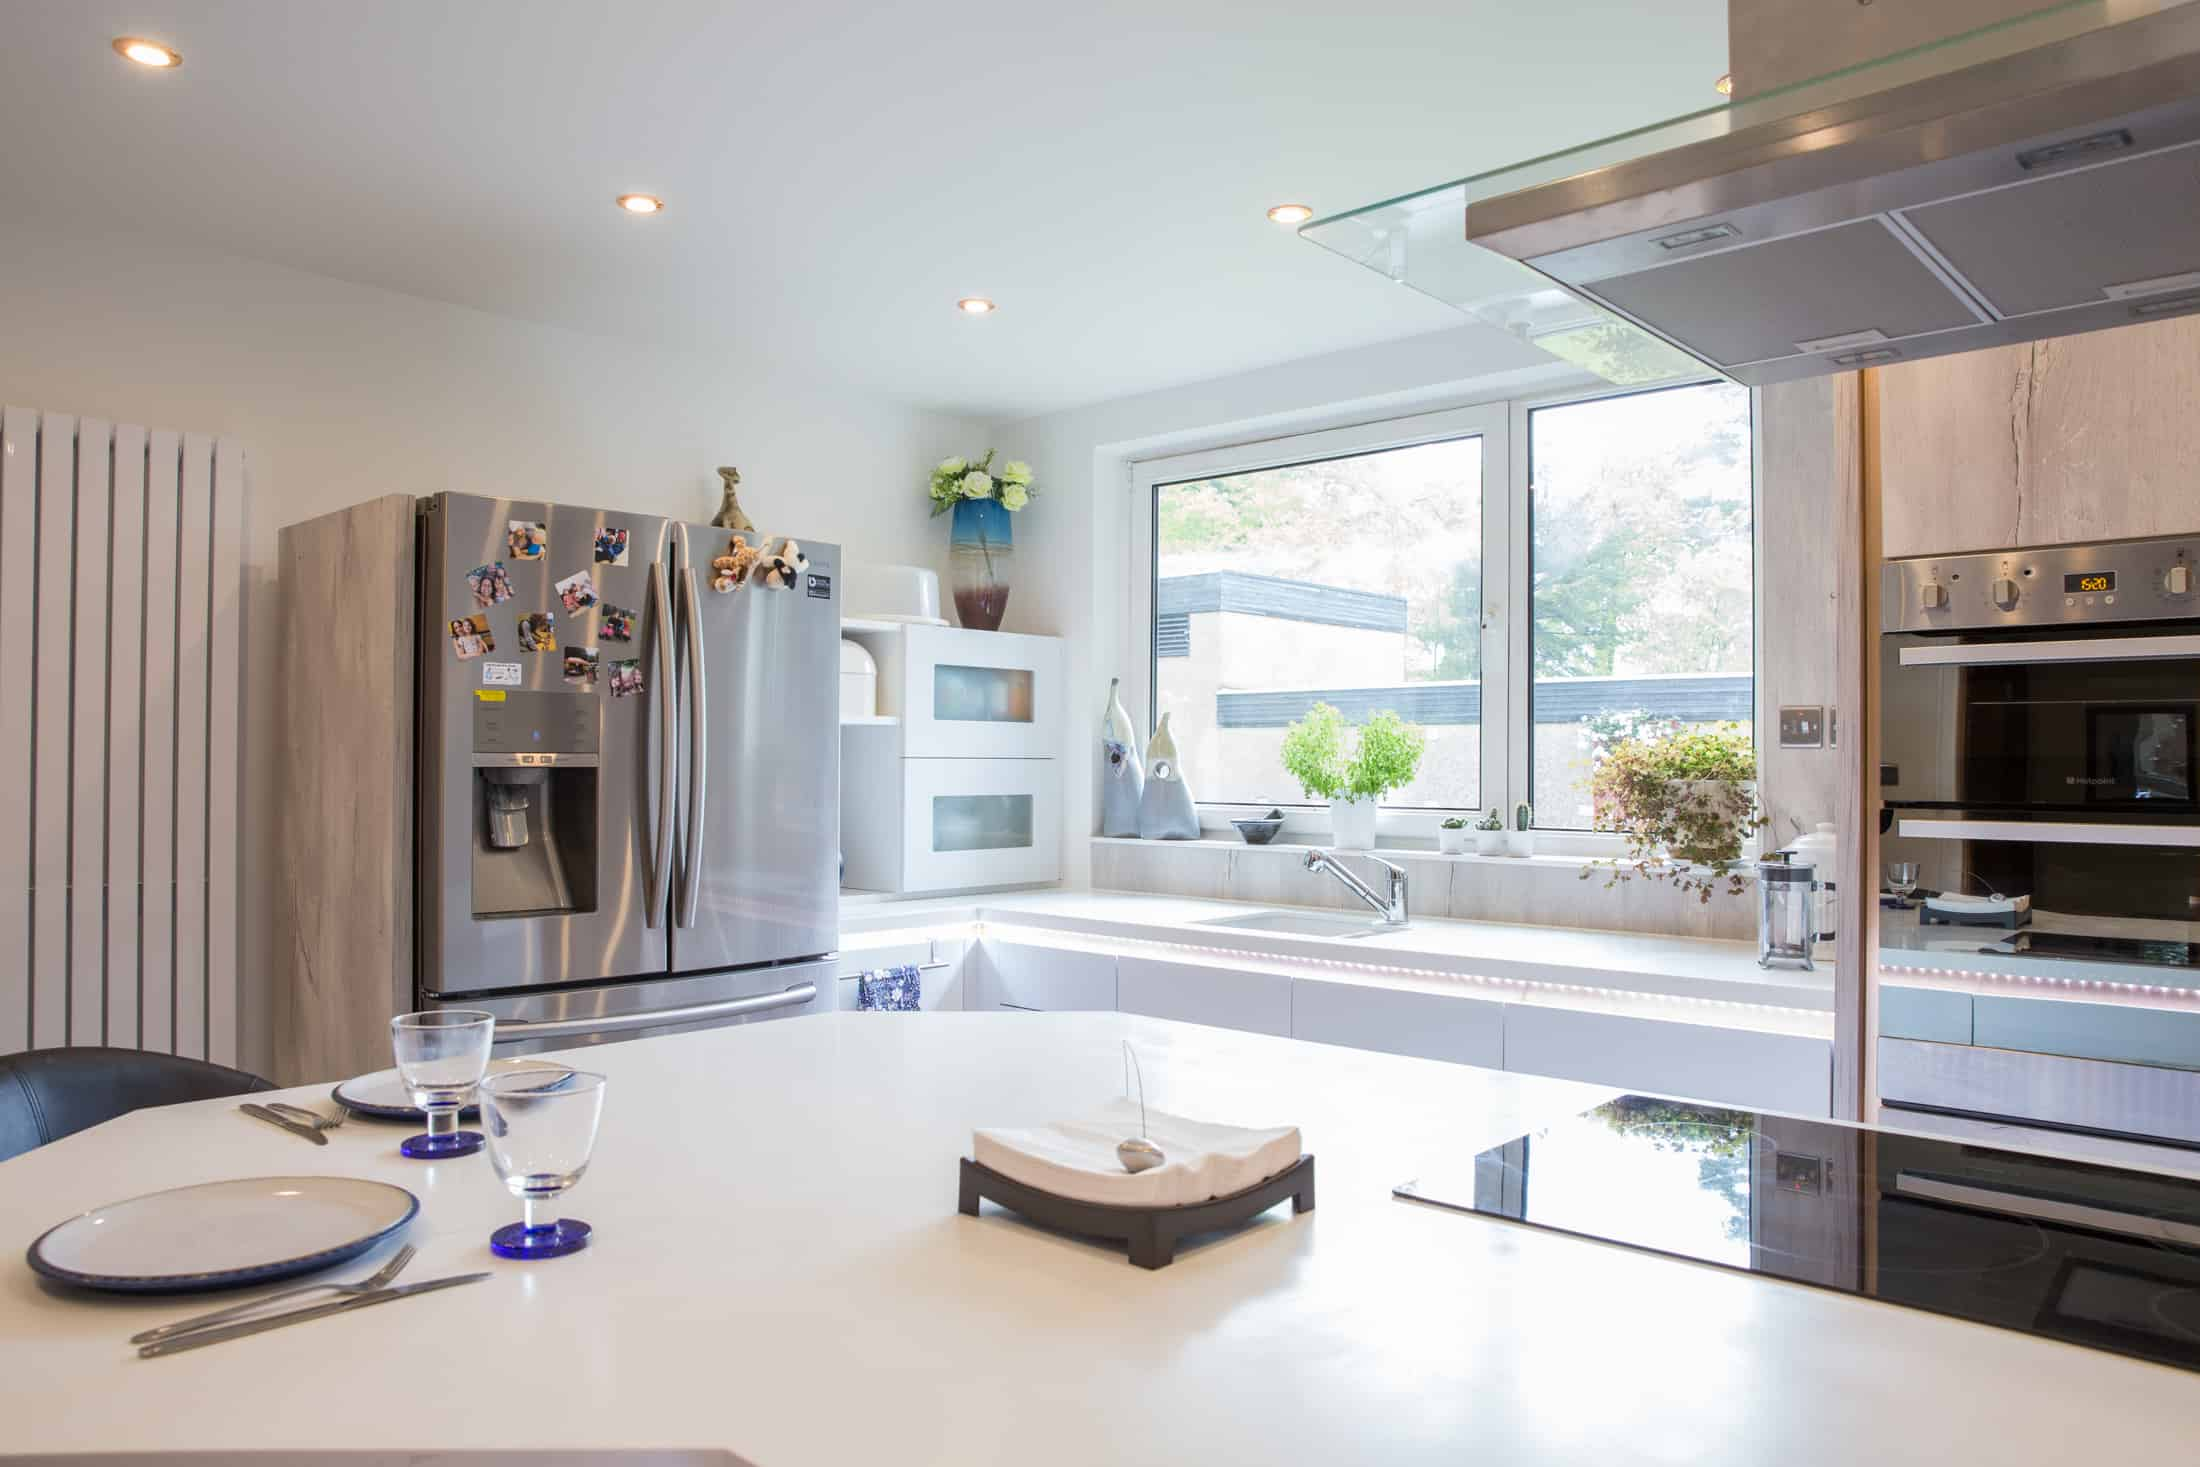 a fully furnished kitchen which was performed by the best kitchen installers in Glasgow